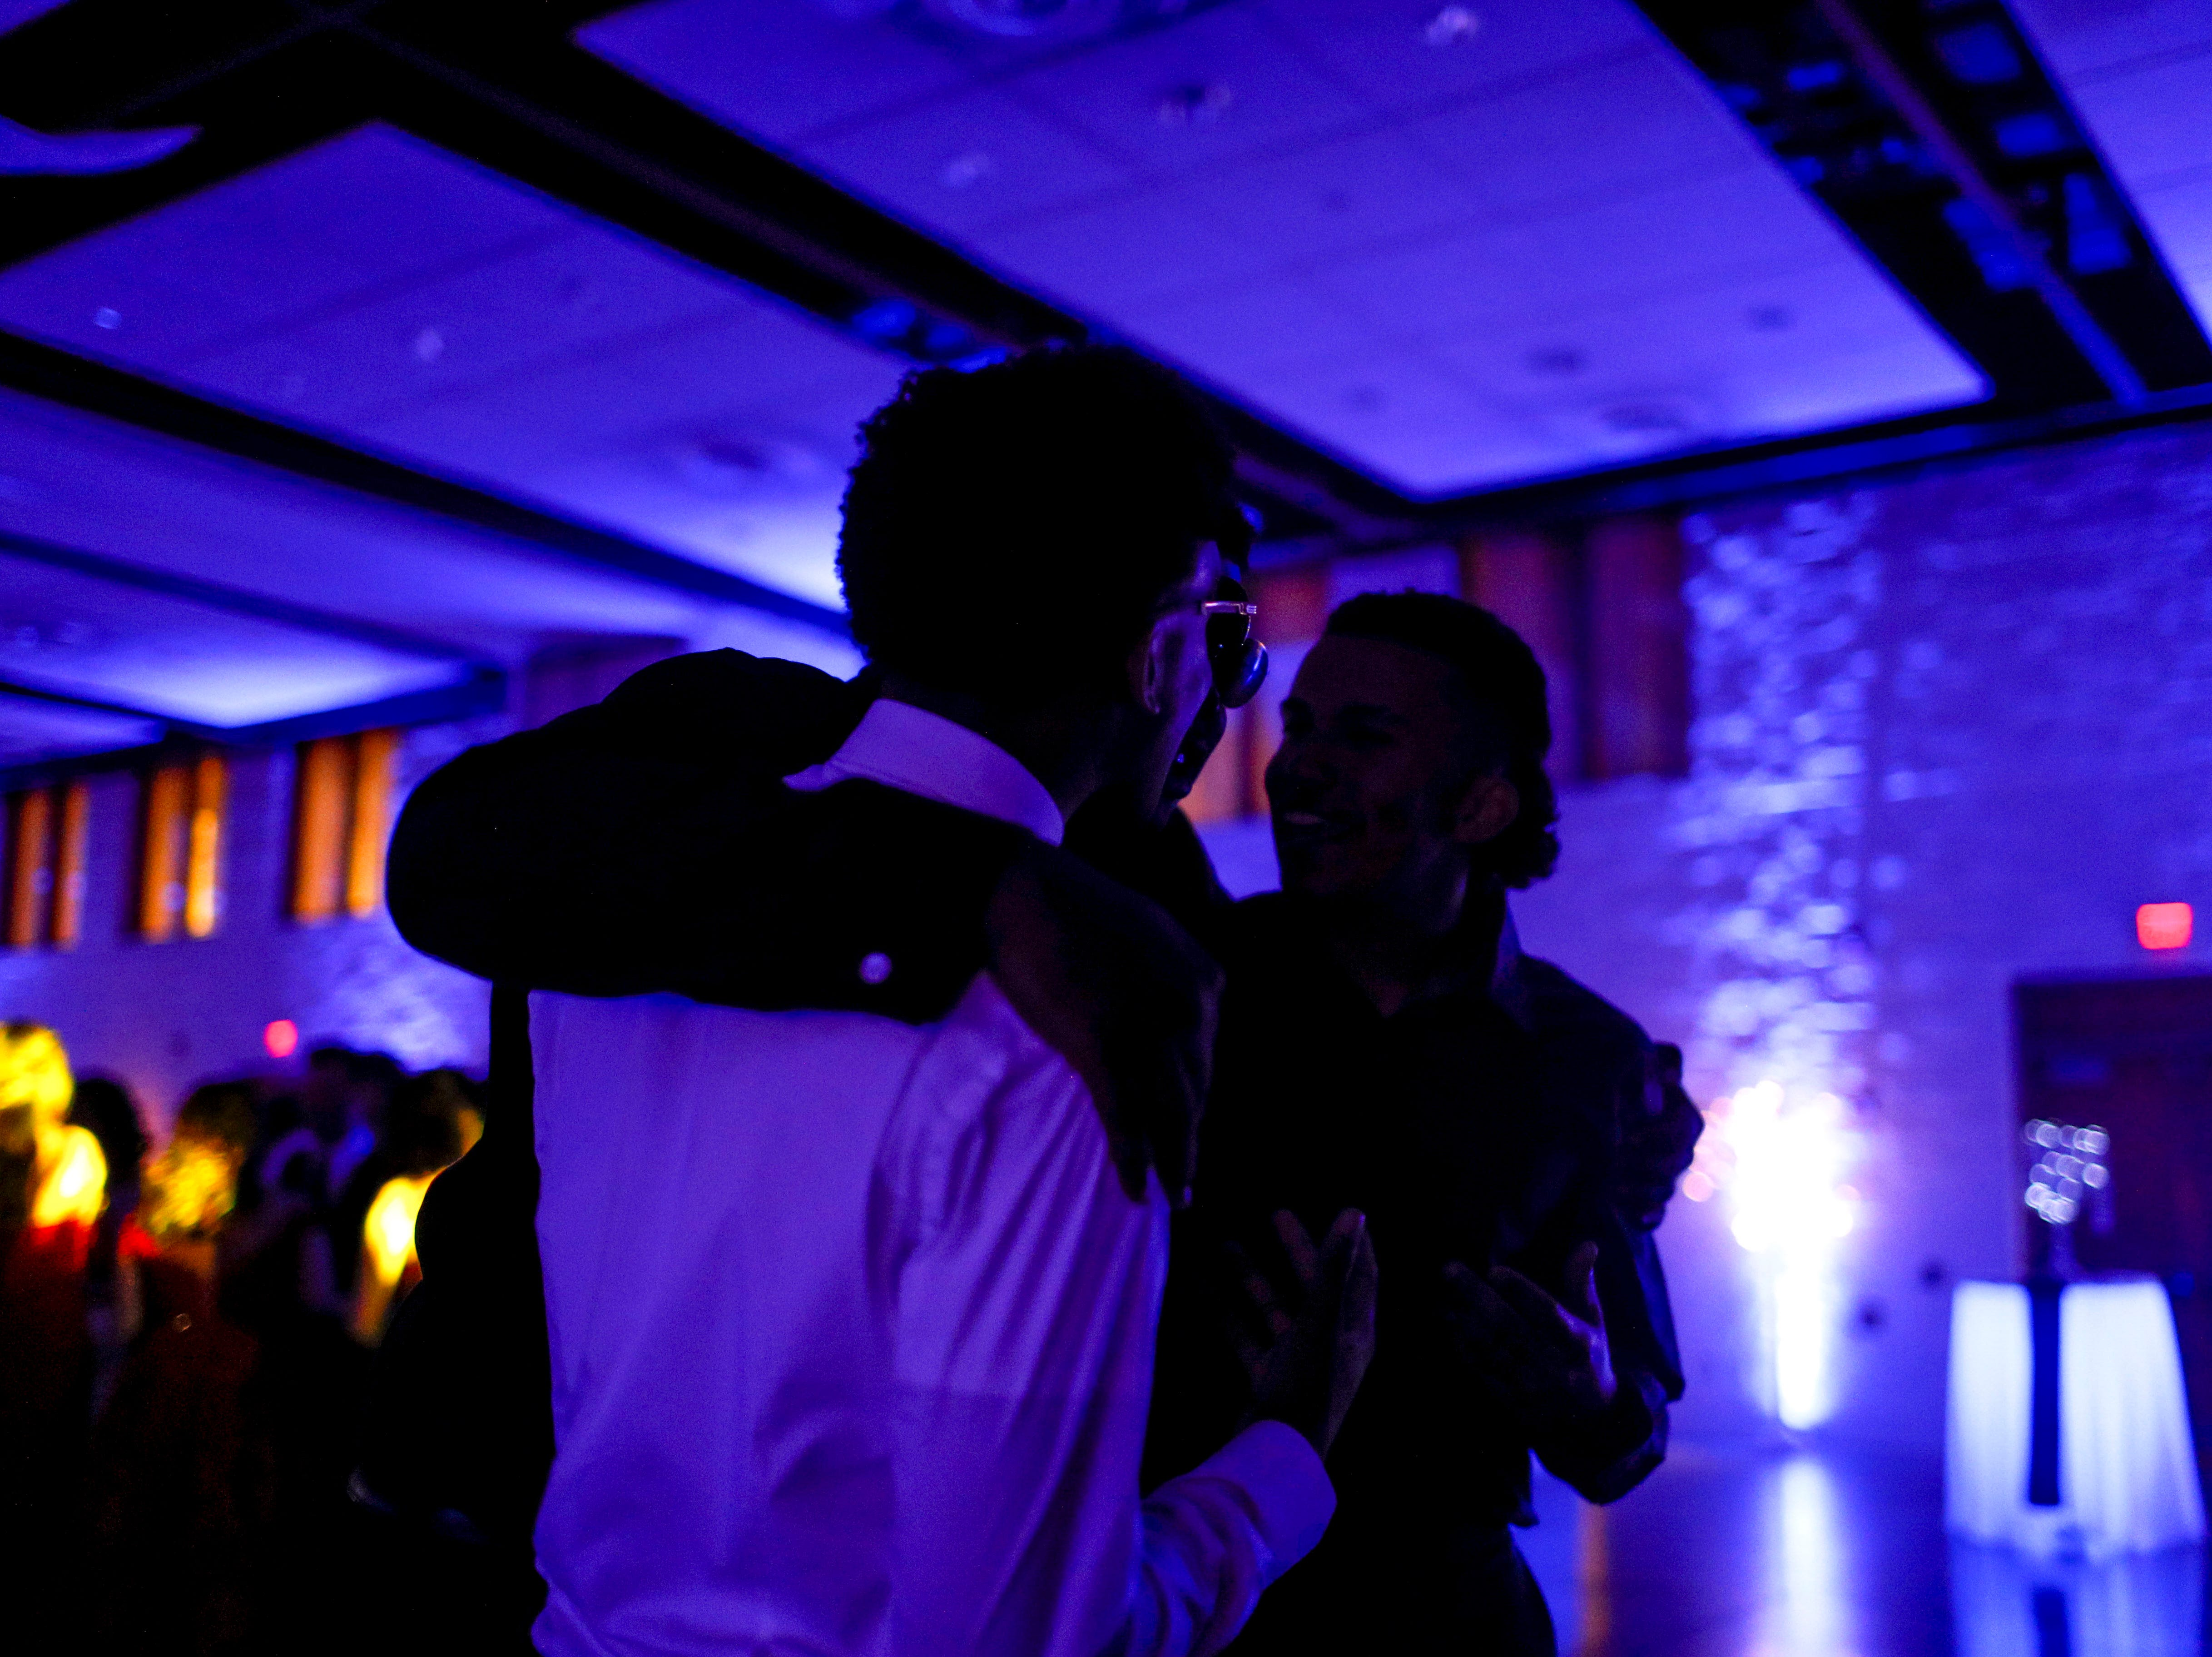 Students approach the DJ platform prepared to write down song requests during Clarksville Academy's 2019 prom at The Bruce Convention Center in Hopkinsville, Ky., on Saturday, April 6, 2019.